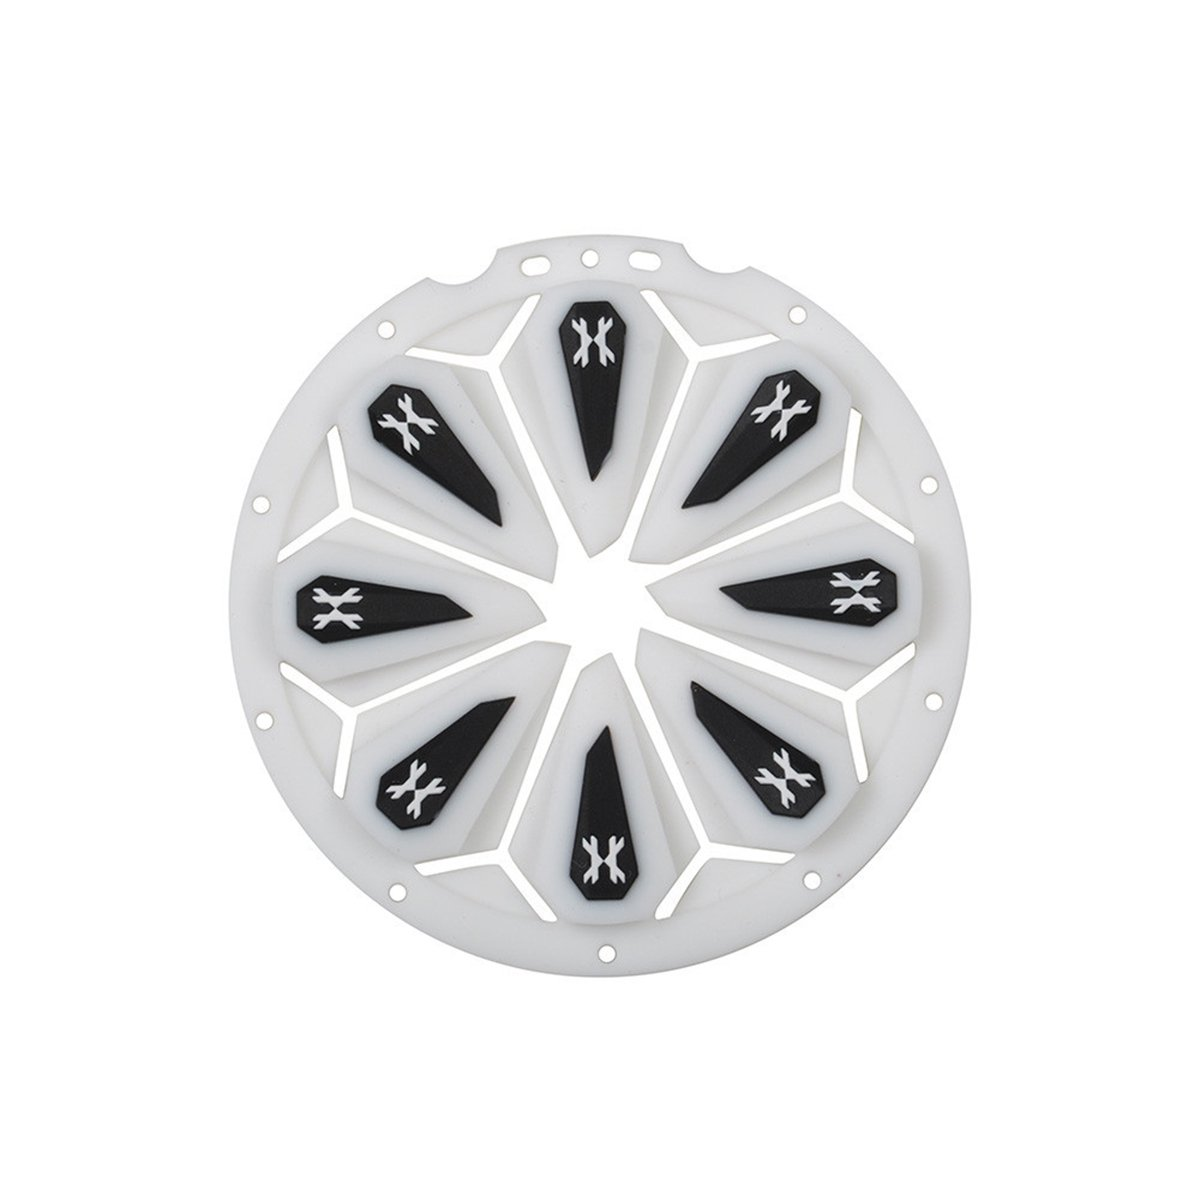 HK Army Epic Speed Feed 2.0 - Rotor/LT-R - Storm Trooper - White/Black by HK Army